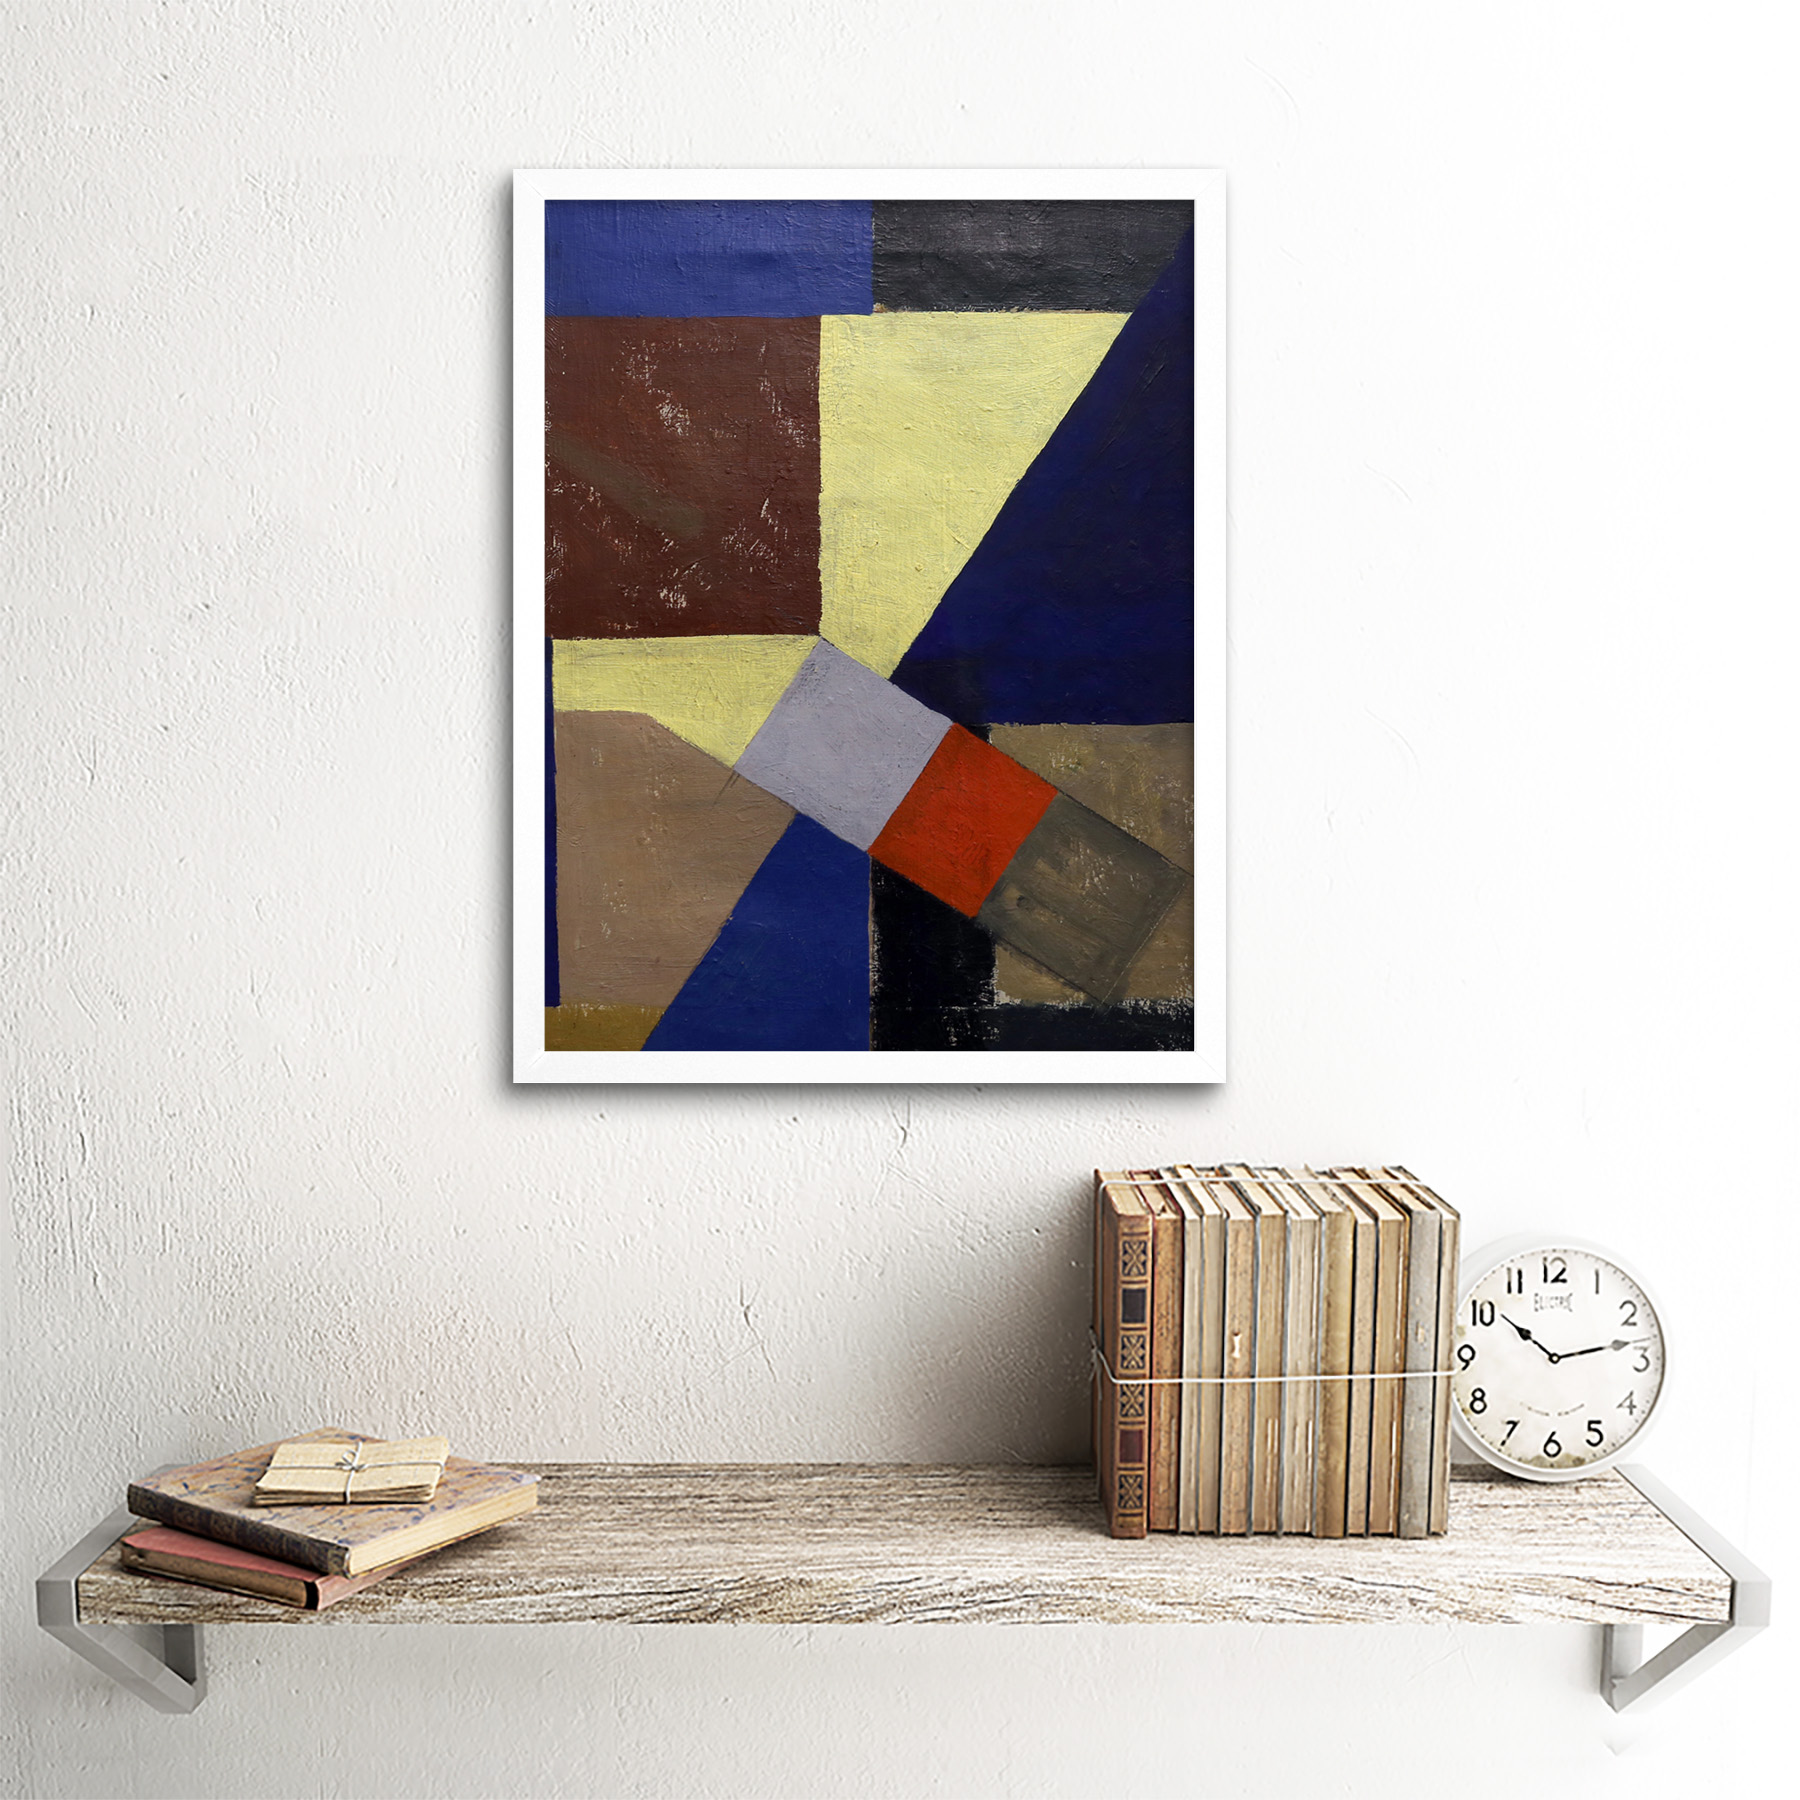 Schwitters-Kurt-Abstract-Composition-Painting-Wall-Art-Print-Framed-12x16 thumbnail 18